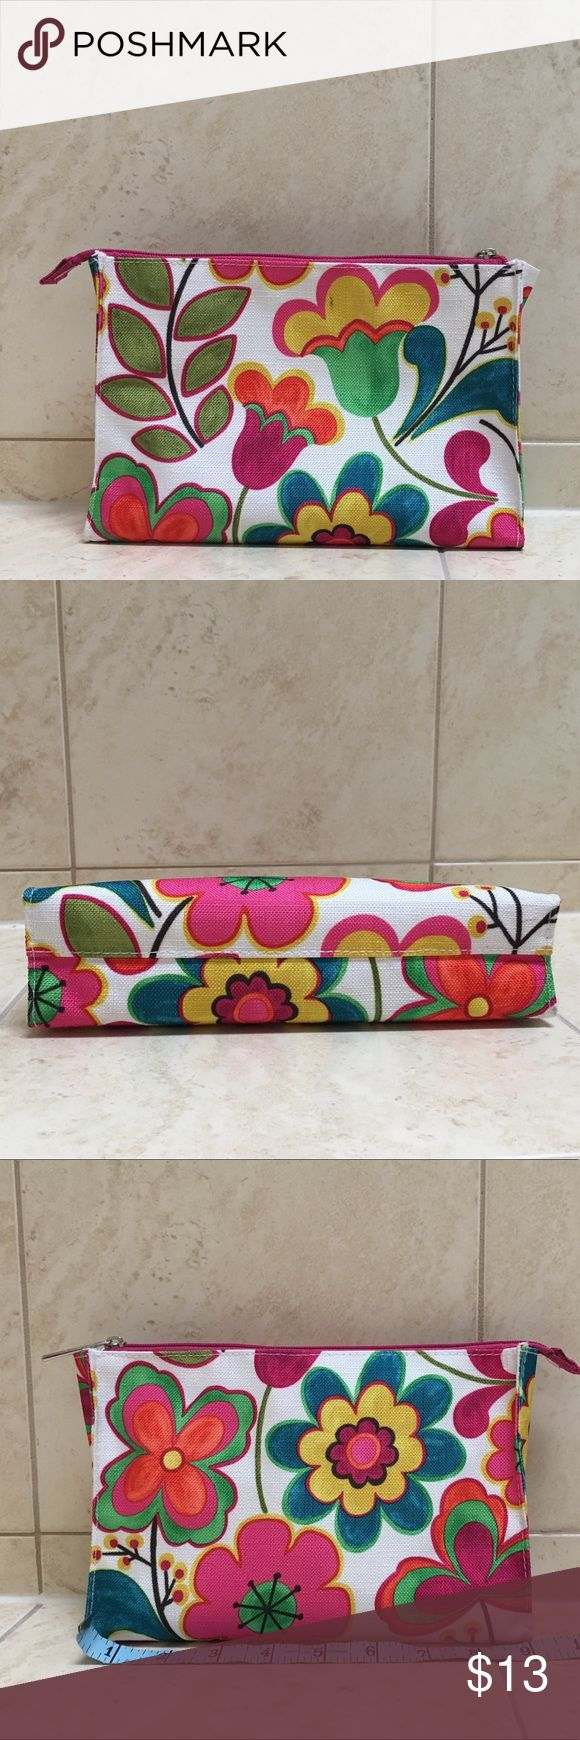 Preloved Clinique Pink Flowers Cosmetic Bag Cosmetic